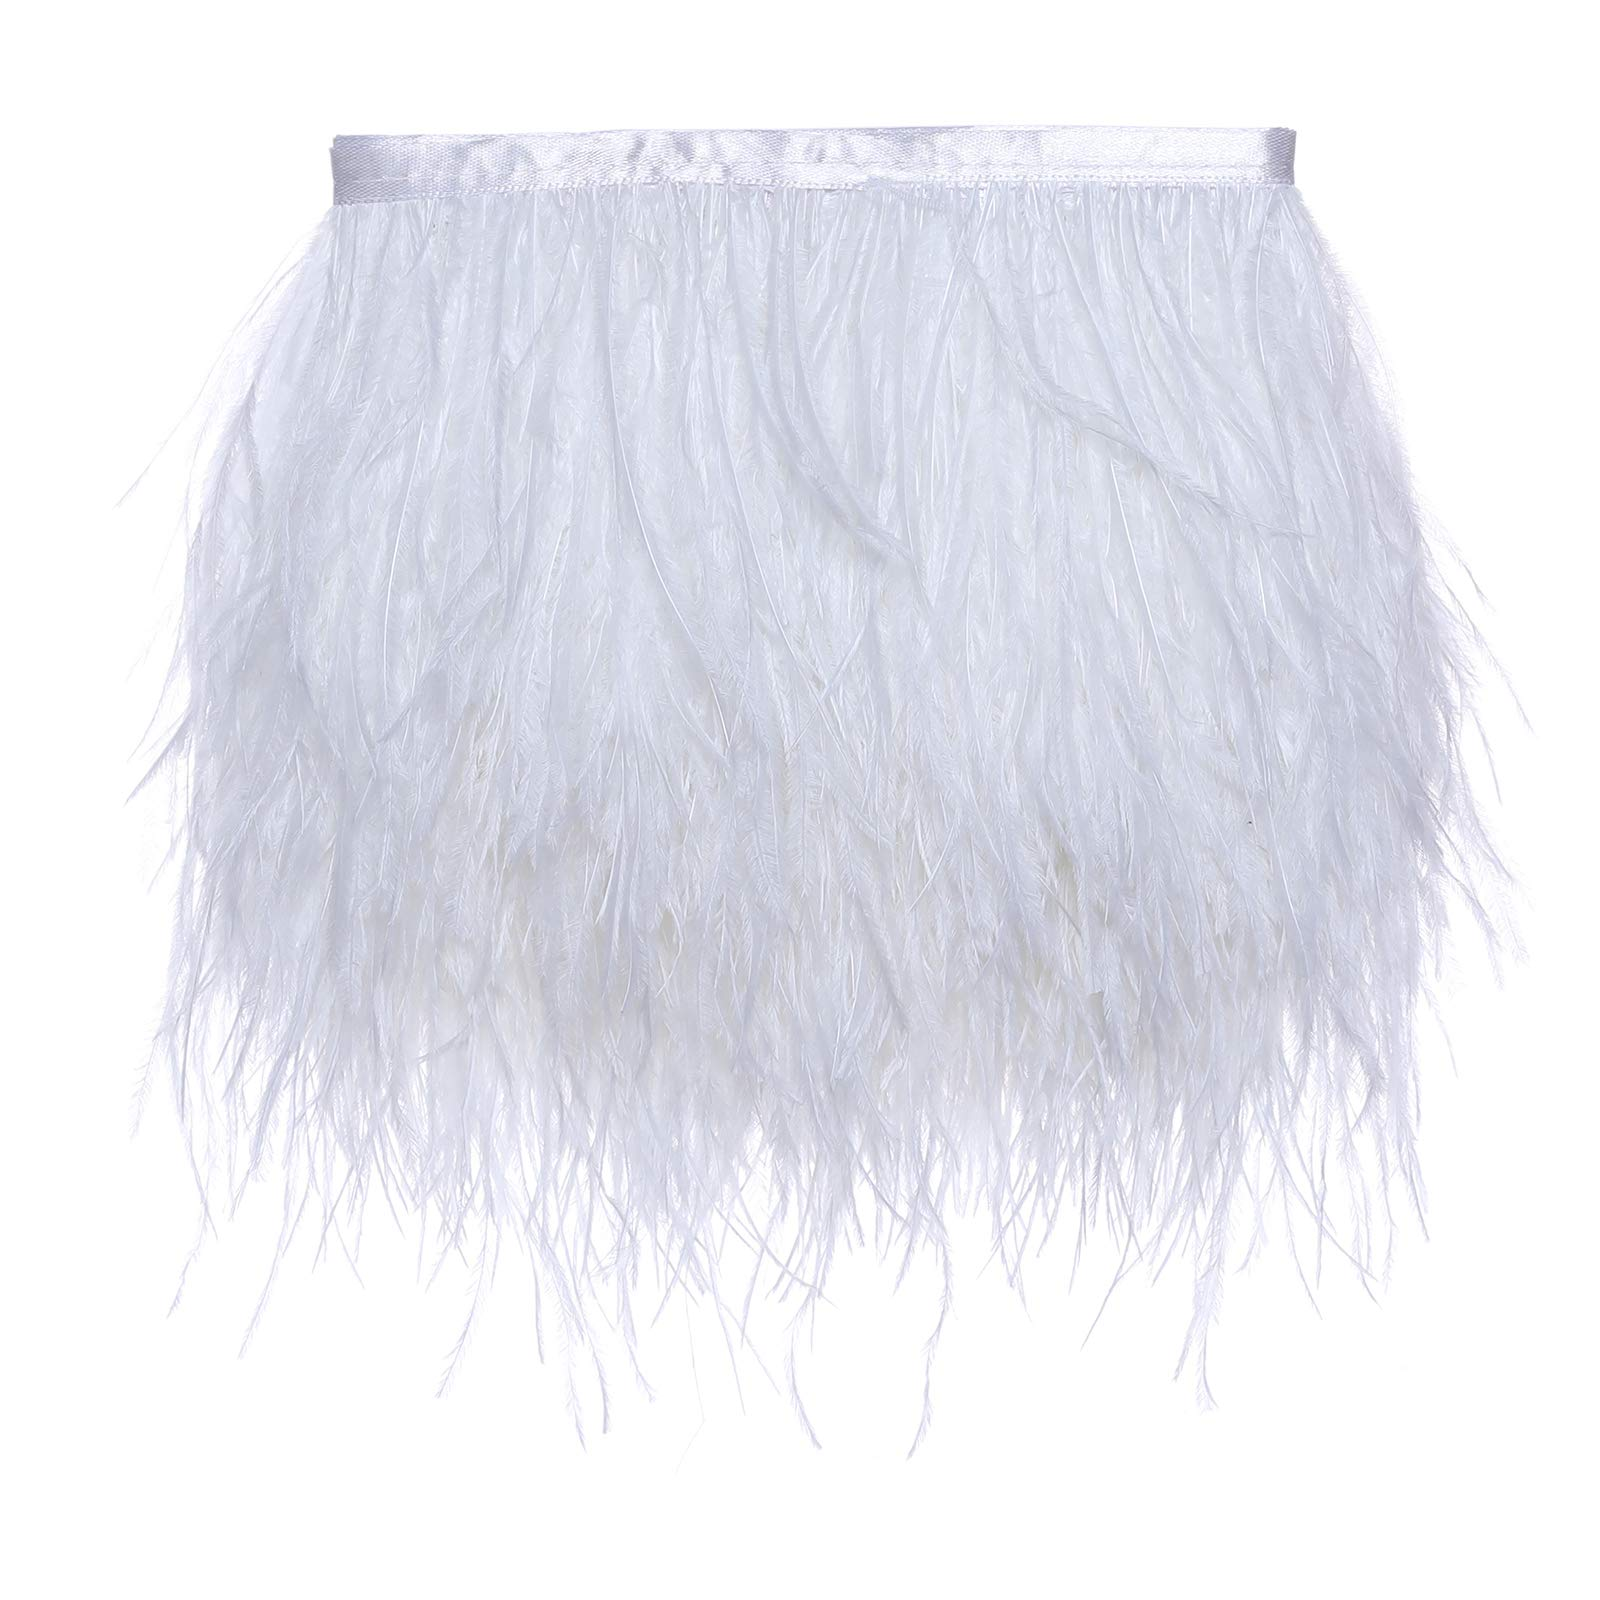 White KOLIGHT Pack of 10 Yards Natural Dyed Ostrich Feathers Trim Fringe 4~5inch for DIY Dress Sewing Crafts Costumes Decoration